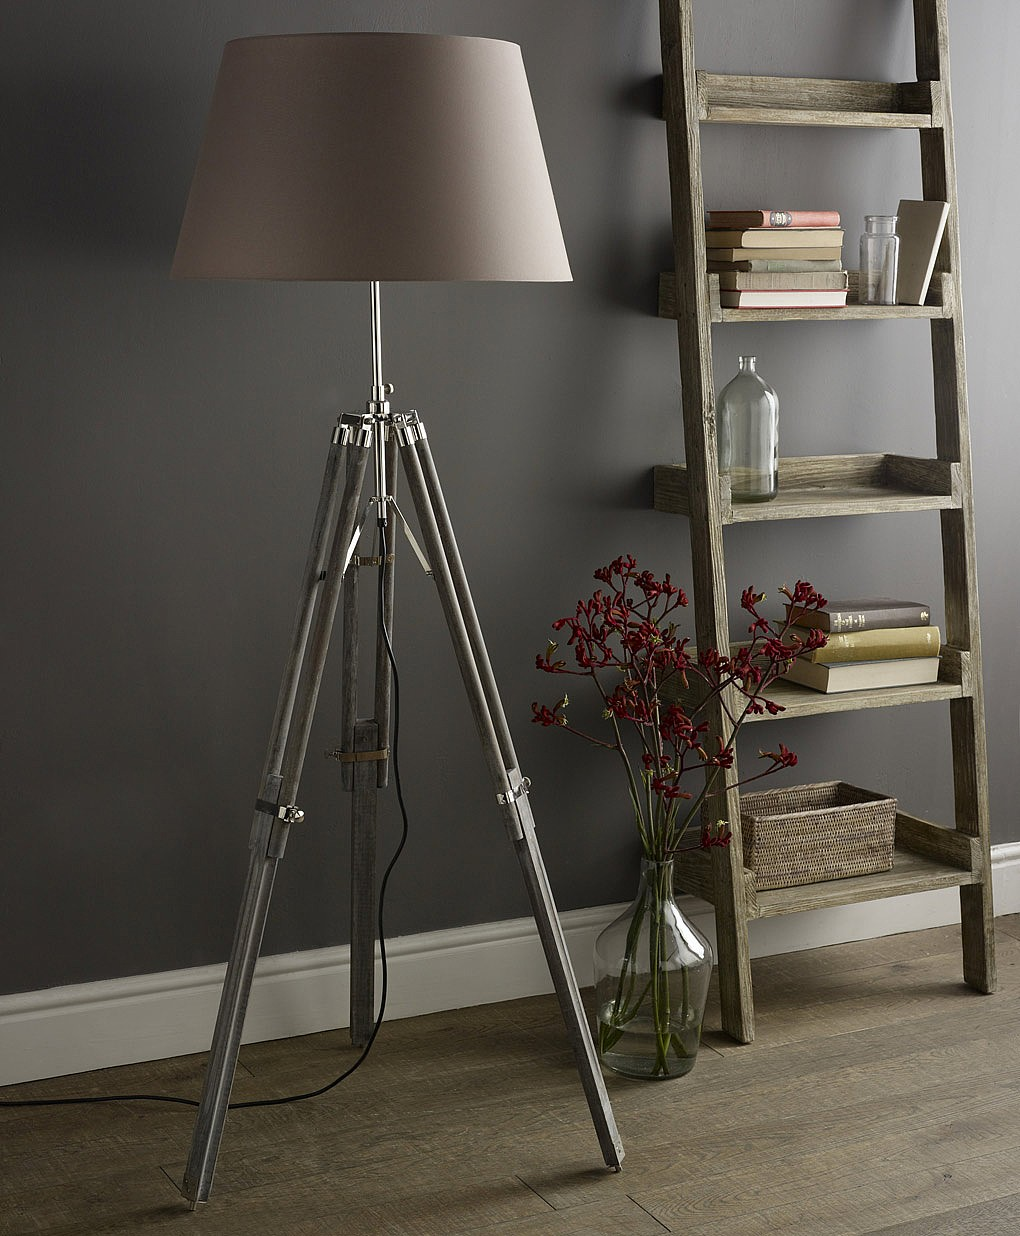 Tripod Lamp | Crate and Barrel Desk Lamp | Mid Century Floor Lamp